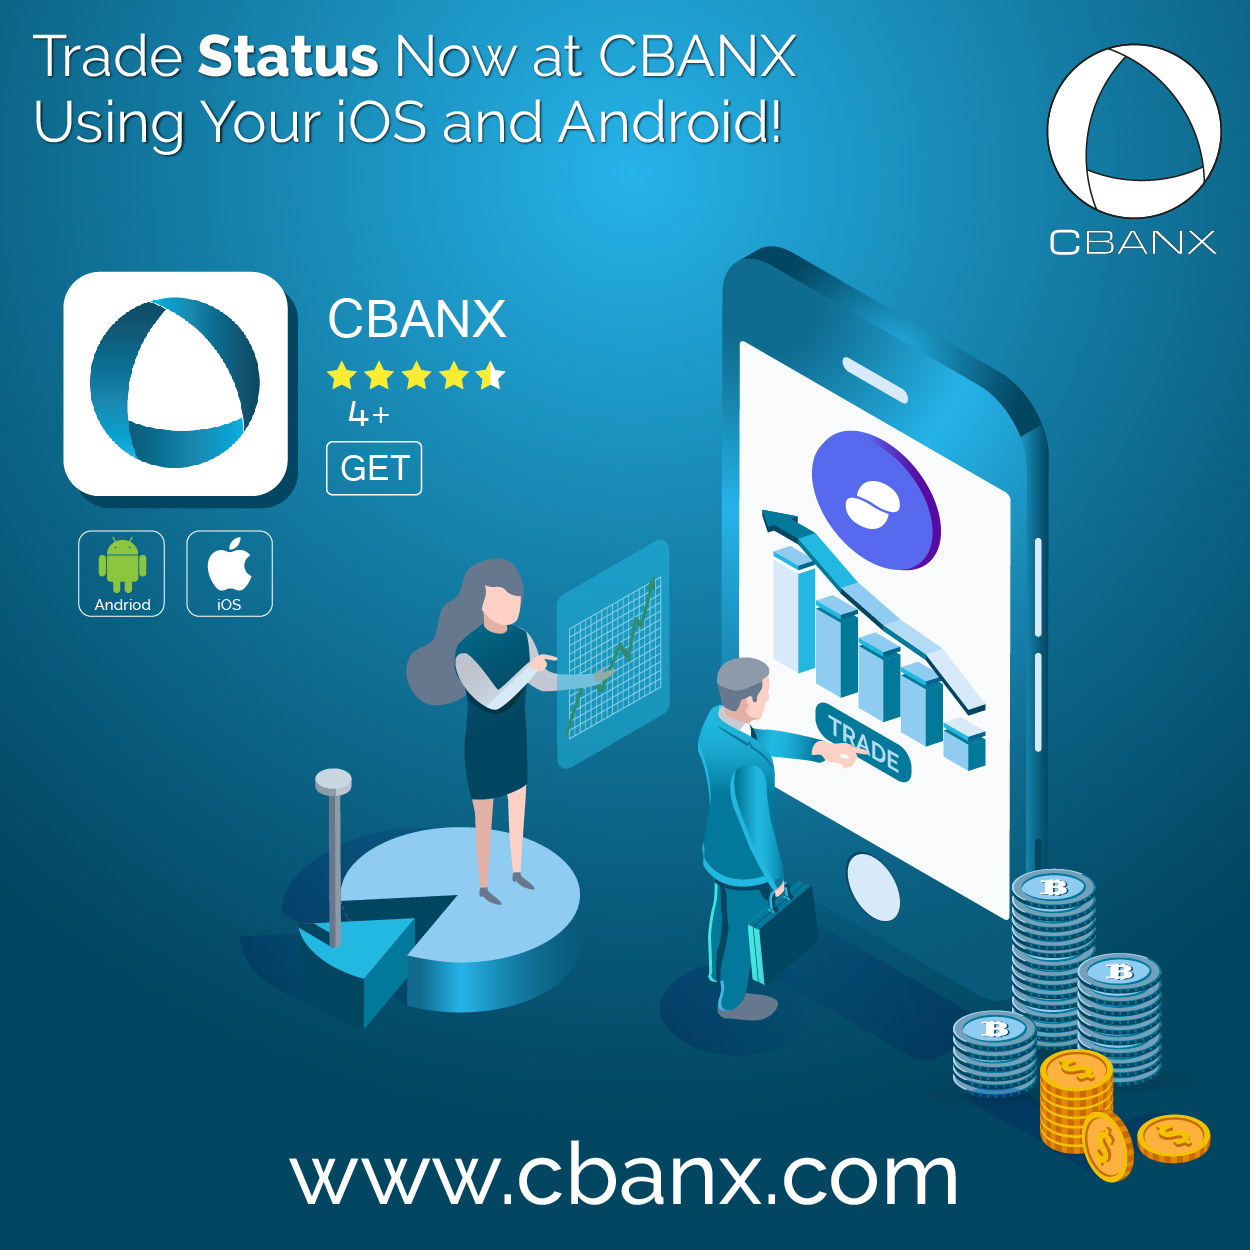 Trade Status Now at CBANX Using Your iOS and Android!